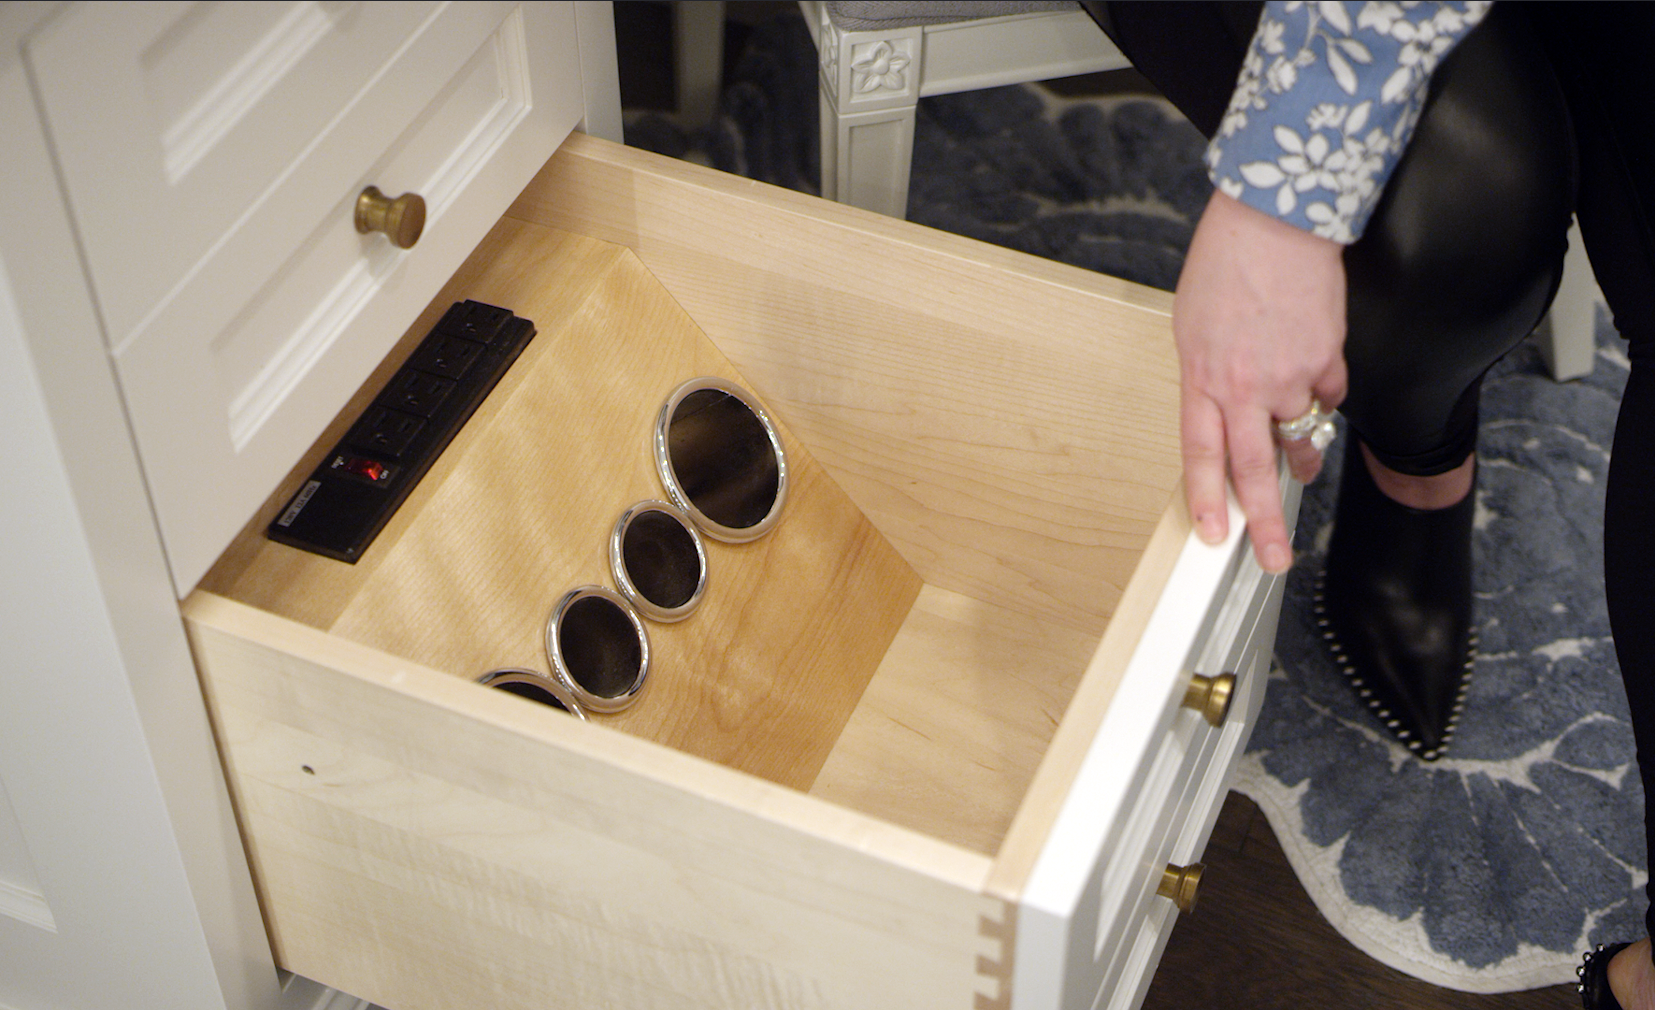 Carly Zucker shows the inside of a drawer with custom holder for hair styling tools.